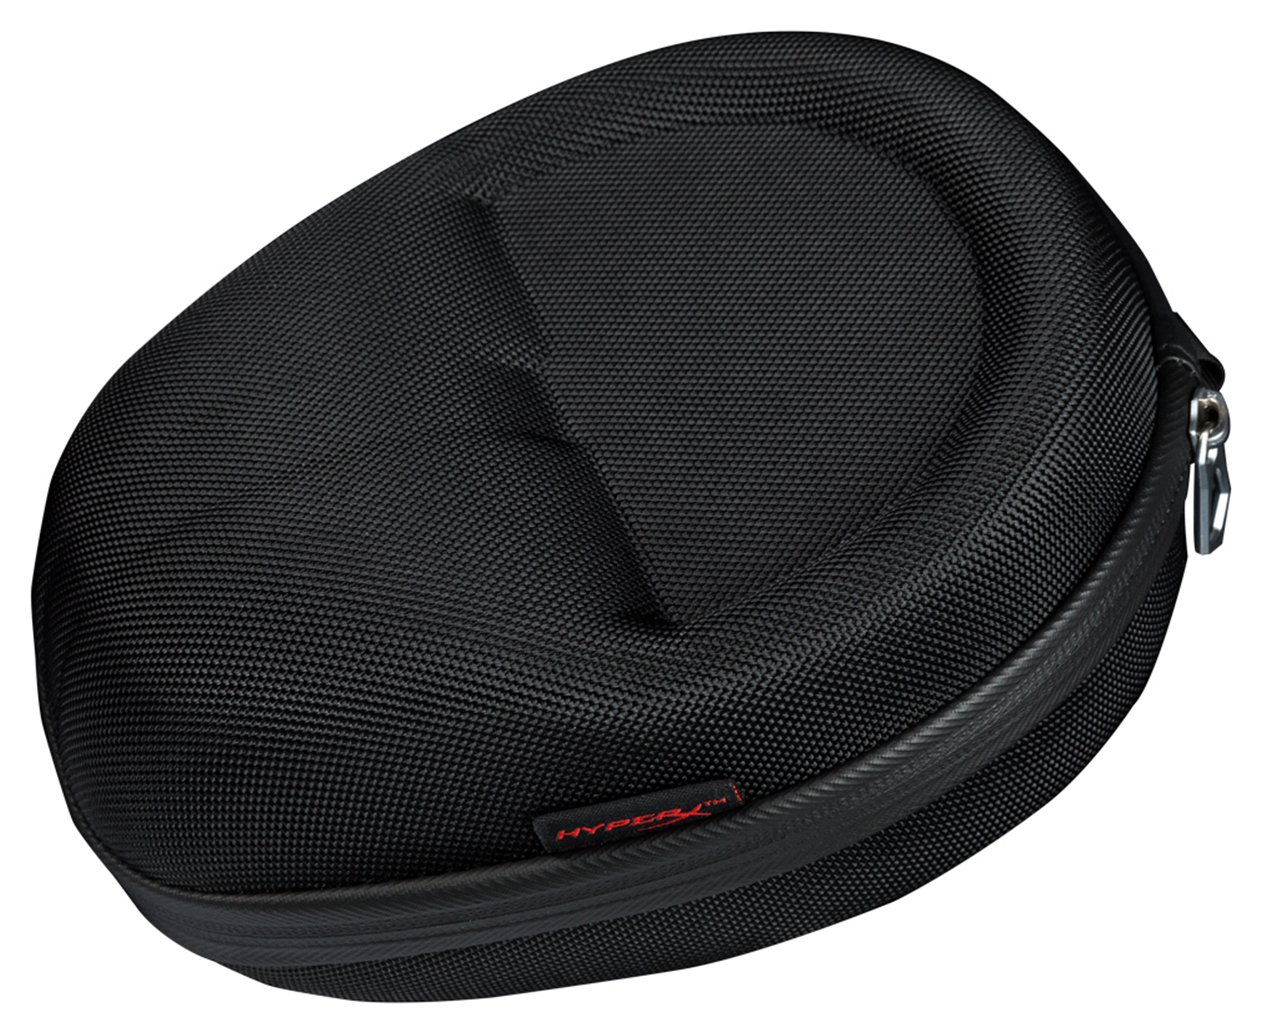 Image of HyperX Official Cloud Headset Carrying Case